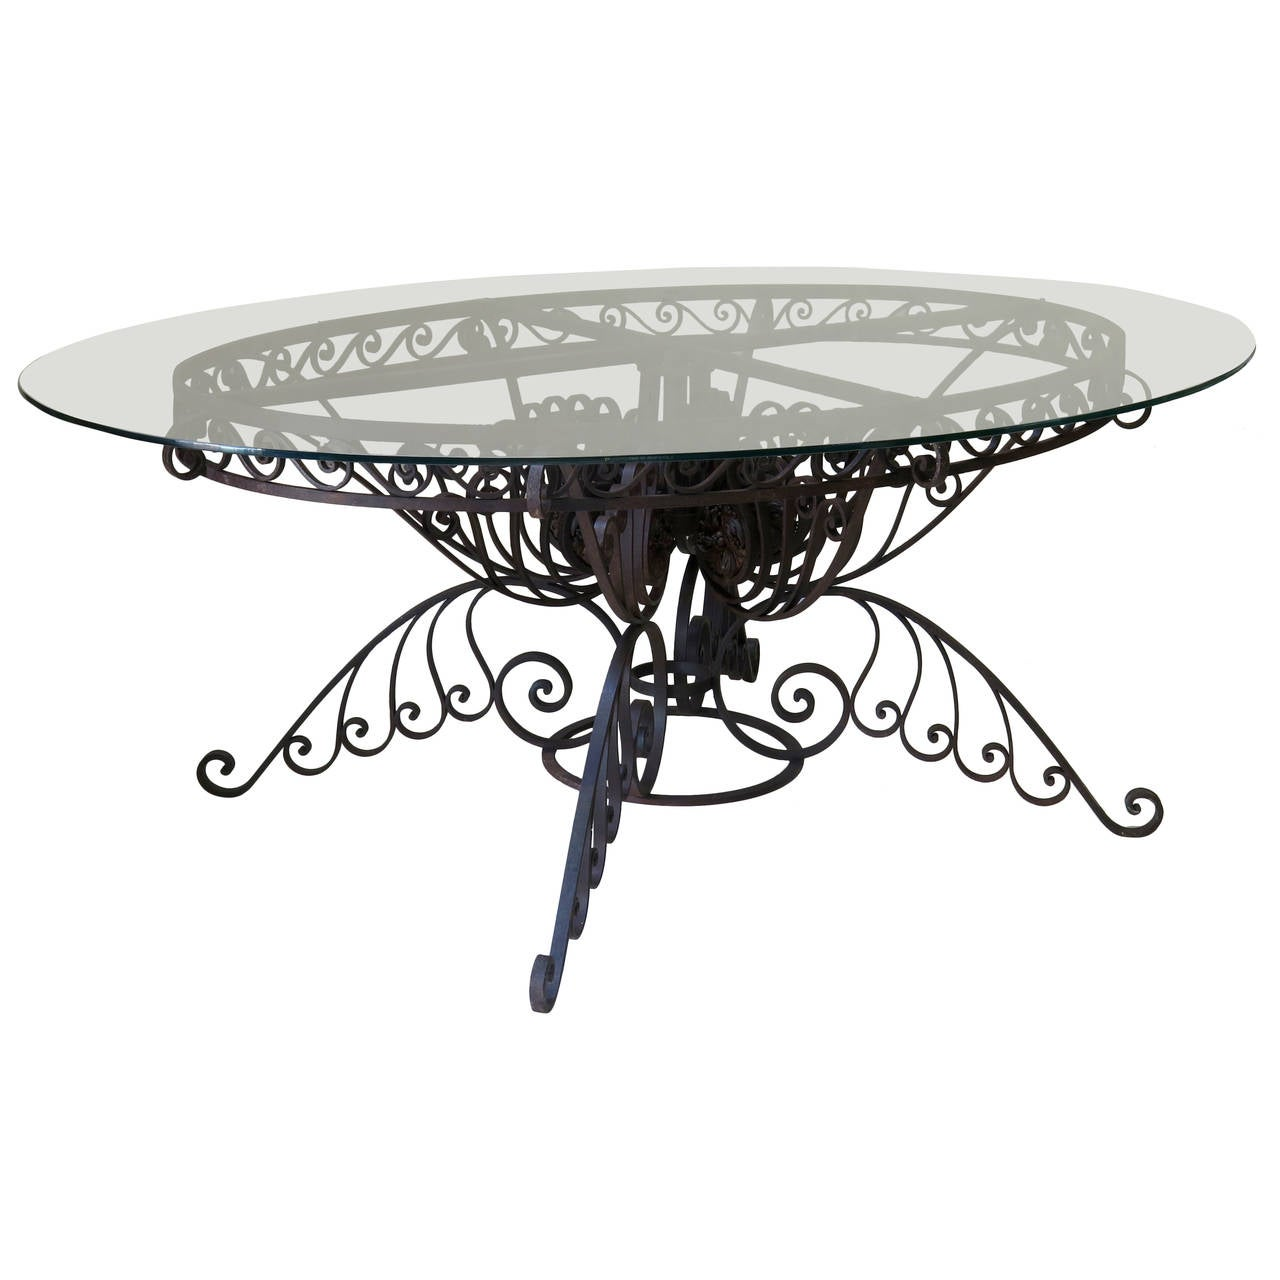 Spectacular Oval Wrought Iron Art Deco Dining Table  : 3007702l from www.1stdibs.com size 1280 x 1280 jpeg 90kB